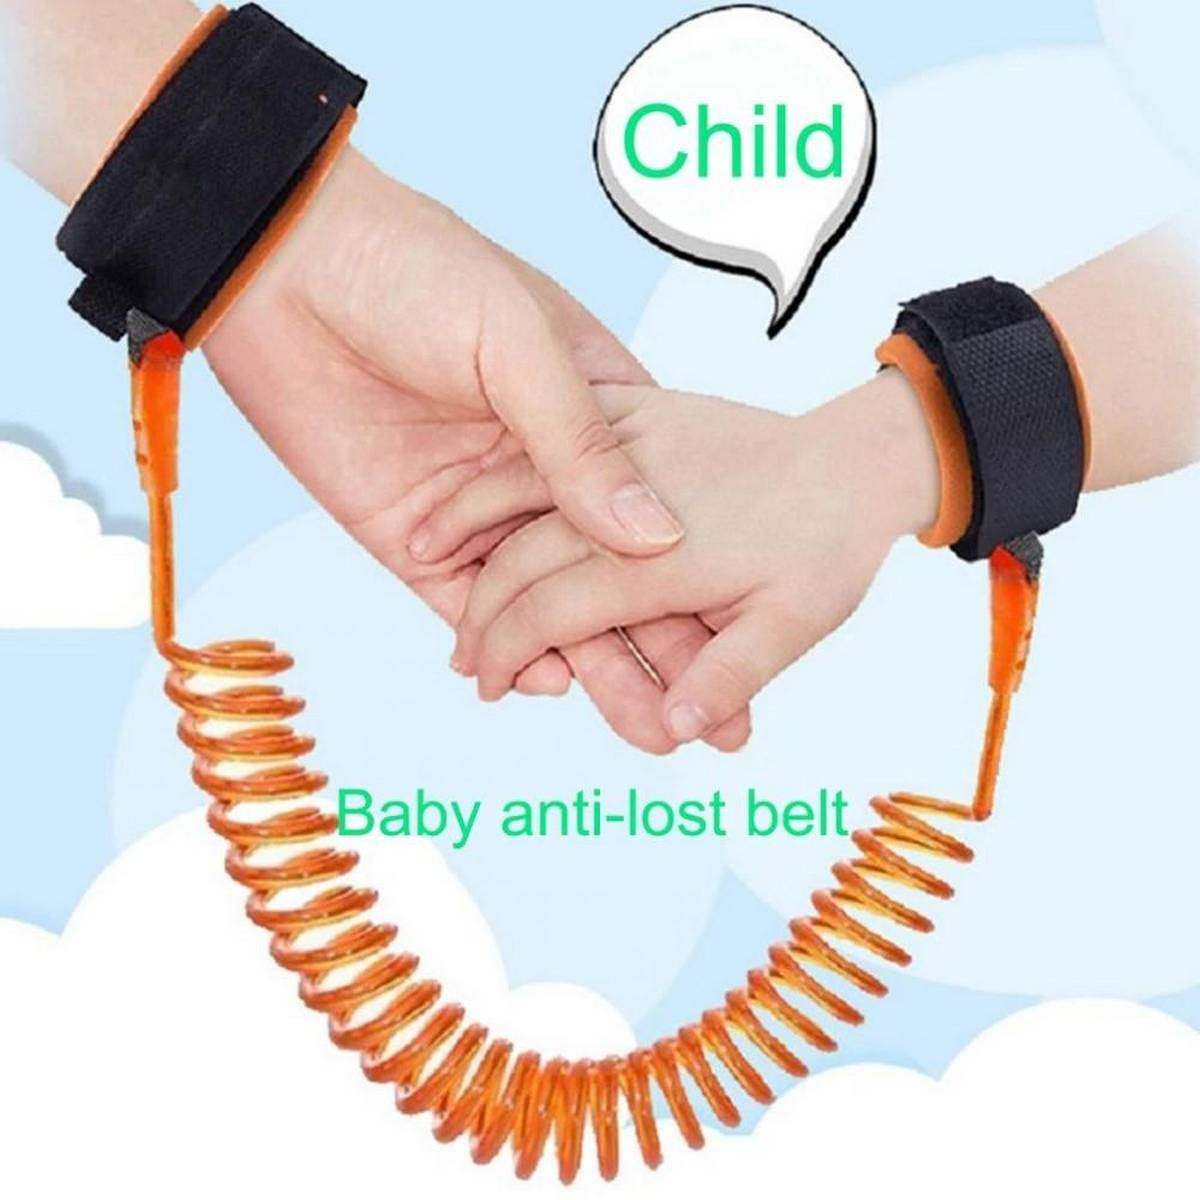 Baby Child Anti Lost Wrist Link Safety Harness Strap Rope Leash Walking Hand Belt Band Wristband For Toddlers, Kids